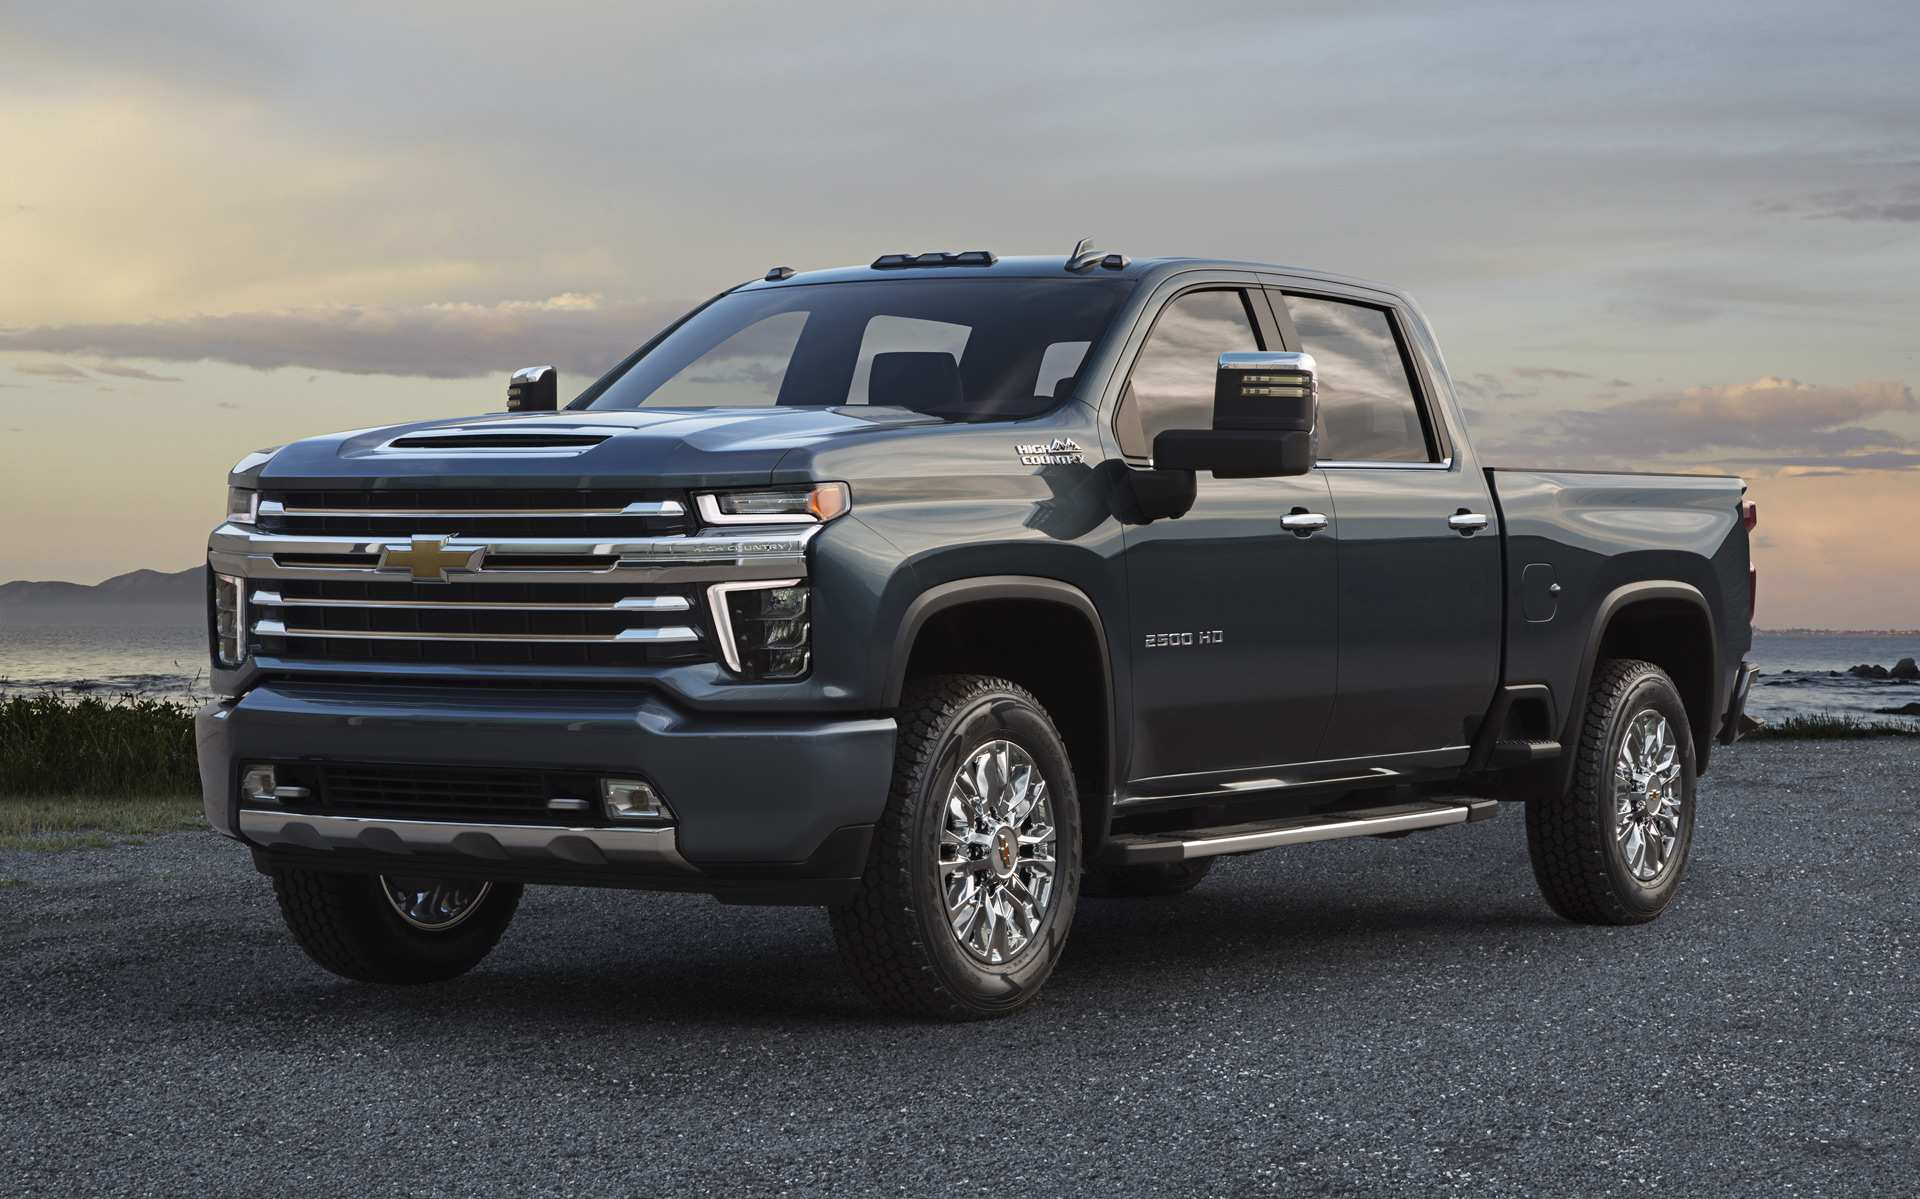 73 New 2020 Chevy Silverado 1500 2500 Release Date And Concept